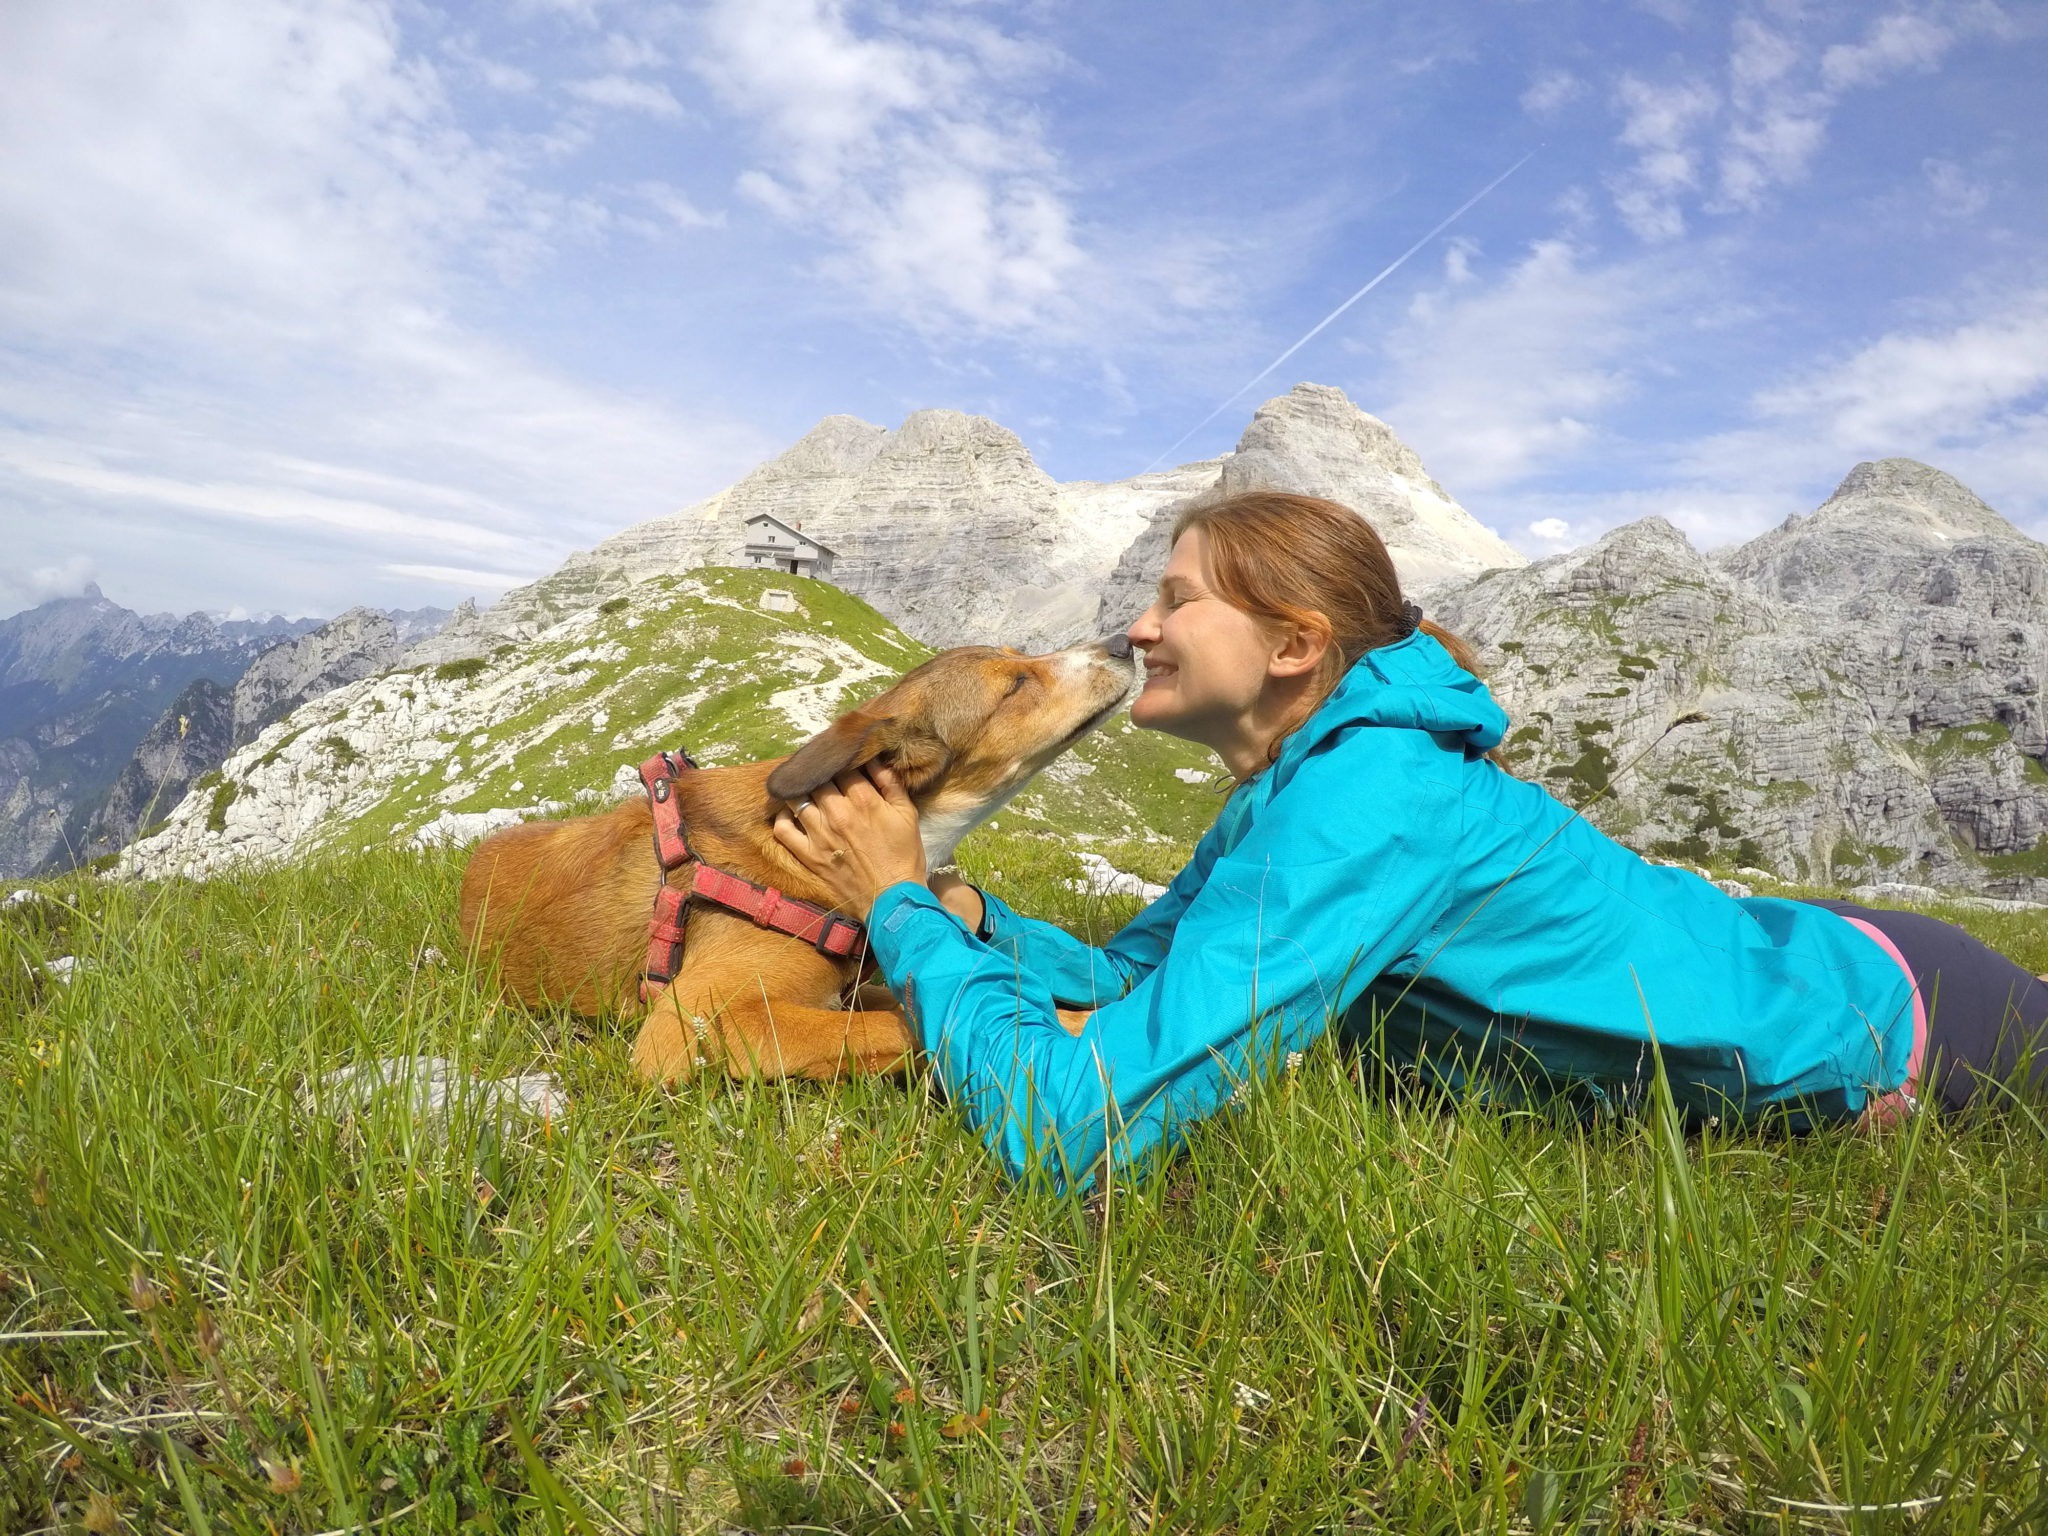 A dog and a woman hiker lying in grass in the mountains